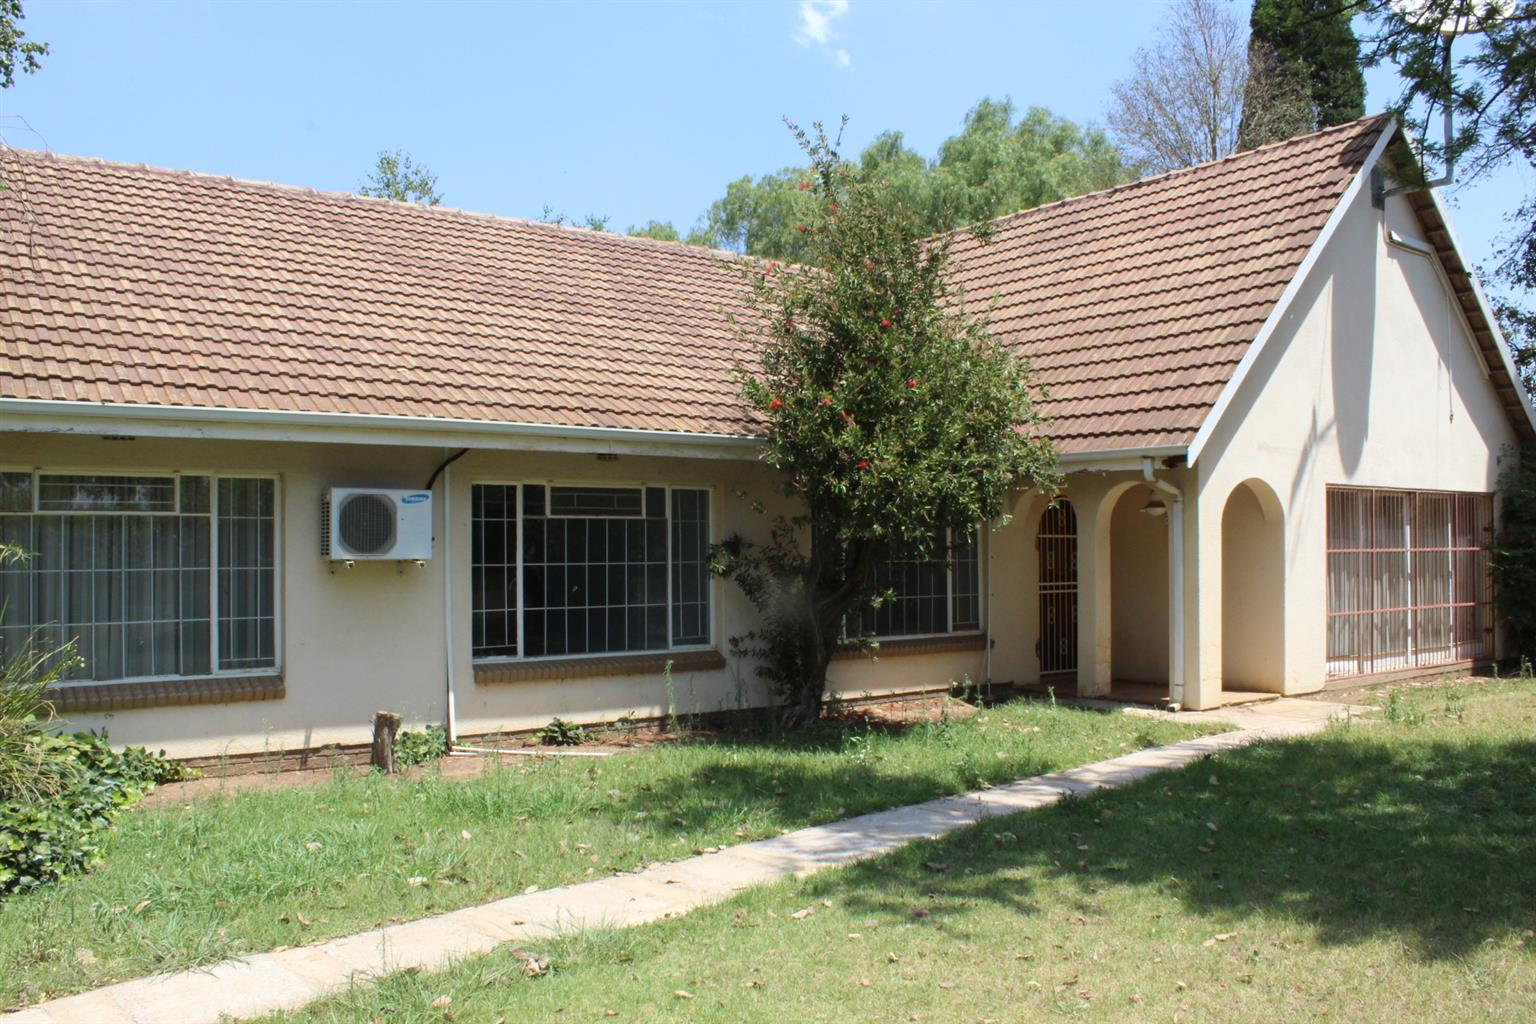 BENONI-1.5 Ha WITH VERY LARGE WORKSHOP.WAREHOUSE-4 BED DOUBLE STSORTEY HOME-R1.6 Ha (PUS VAT)